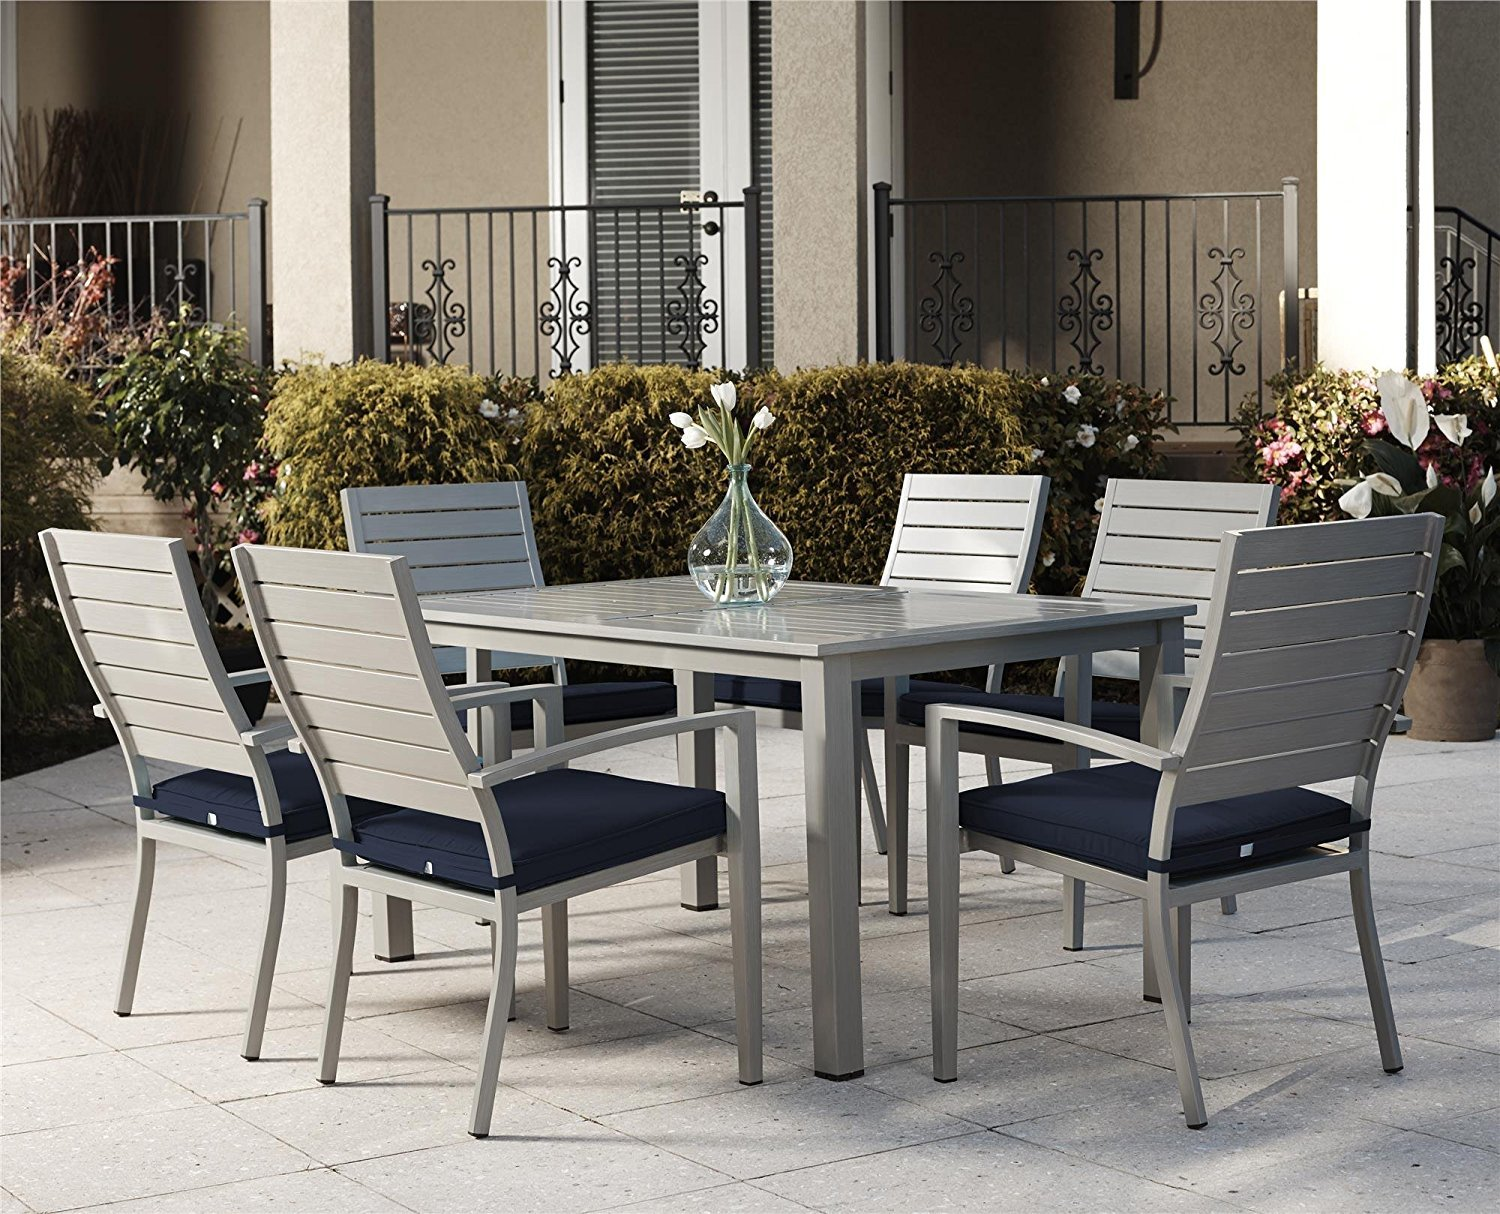 Stackable outdoor chairs lightweight peppermill interiors - Amazon Com Cosco Outdoor 7 Piece Blue Veil Brushed Aluminum Patio Set With Aluminum Frame Navy Blue Cushions Garden Outdoor